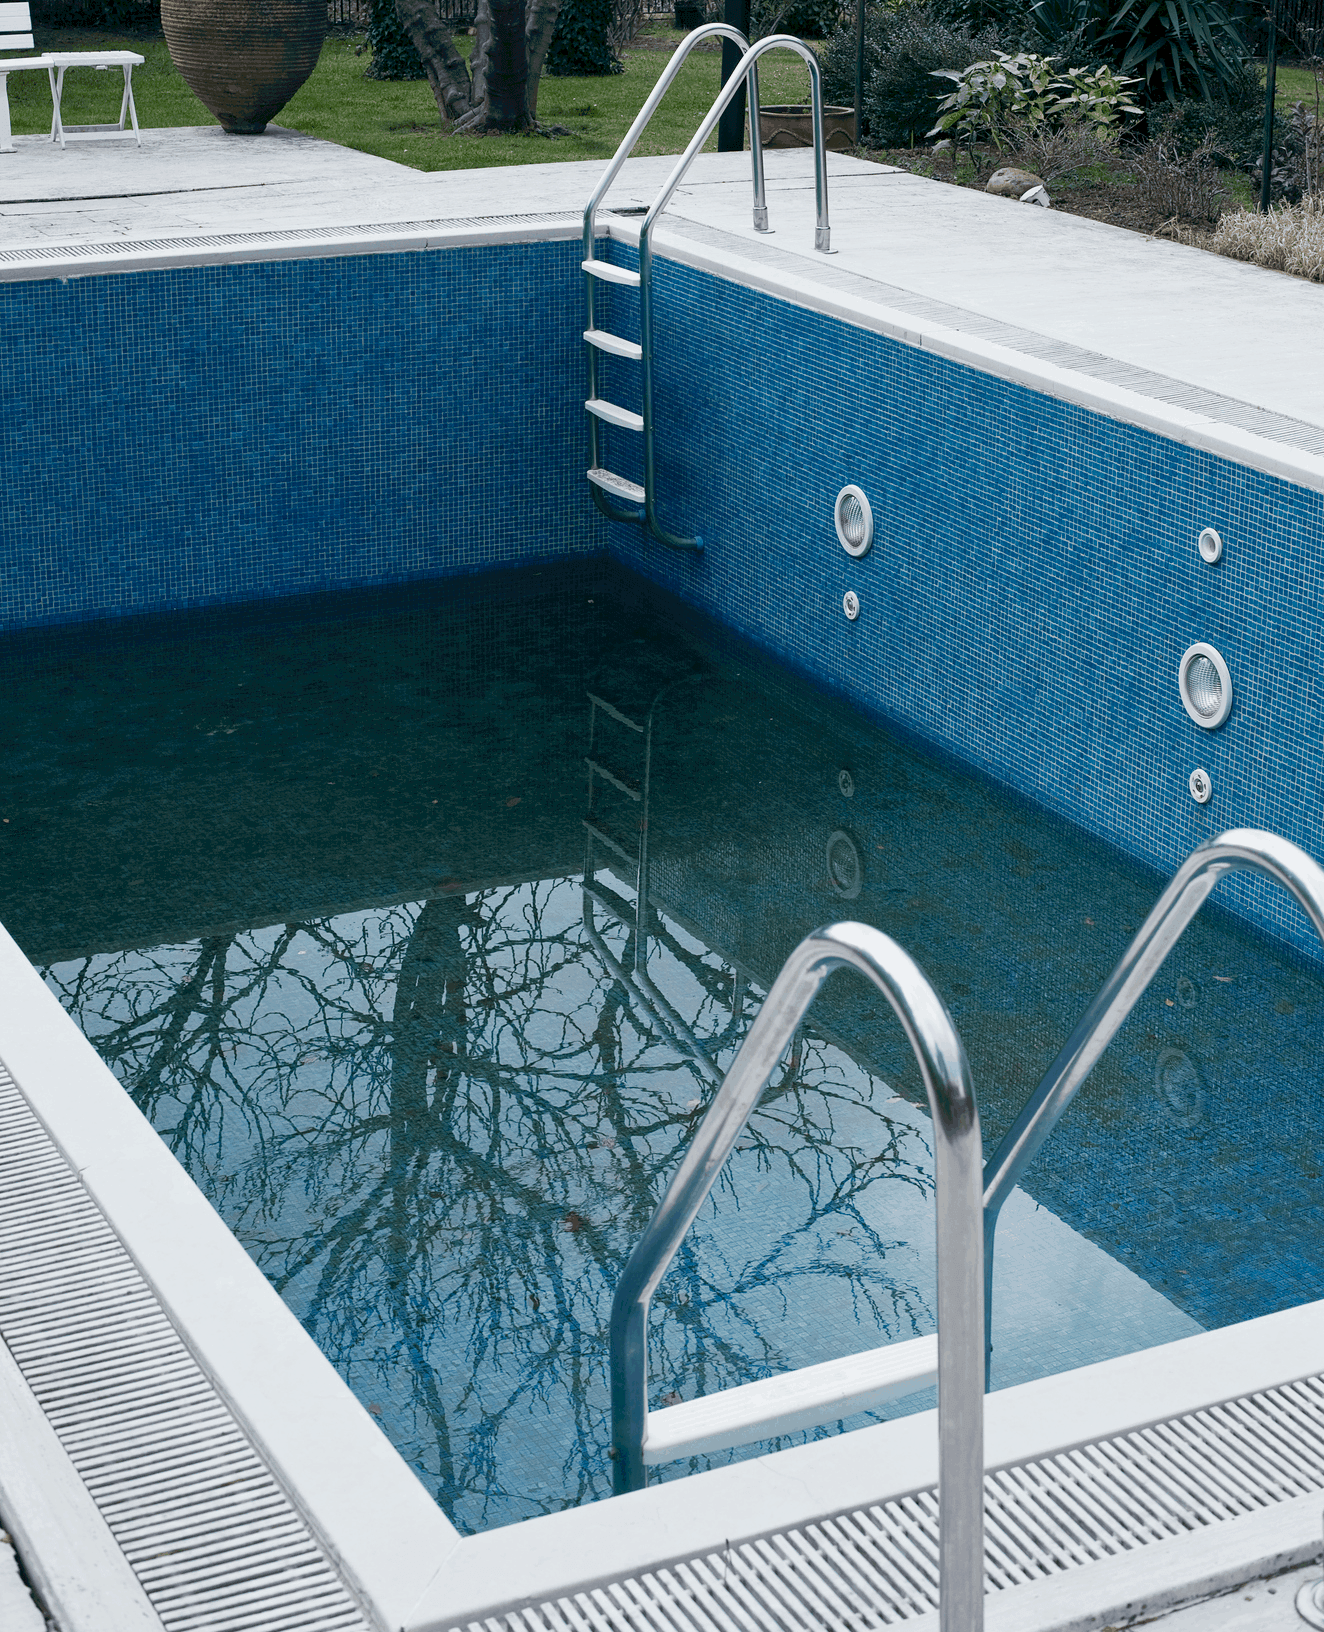 Pool leak detection Yallambie